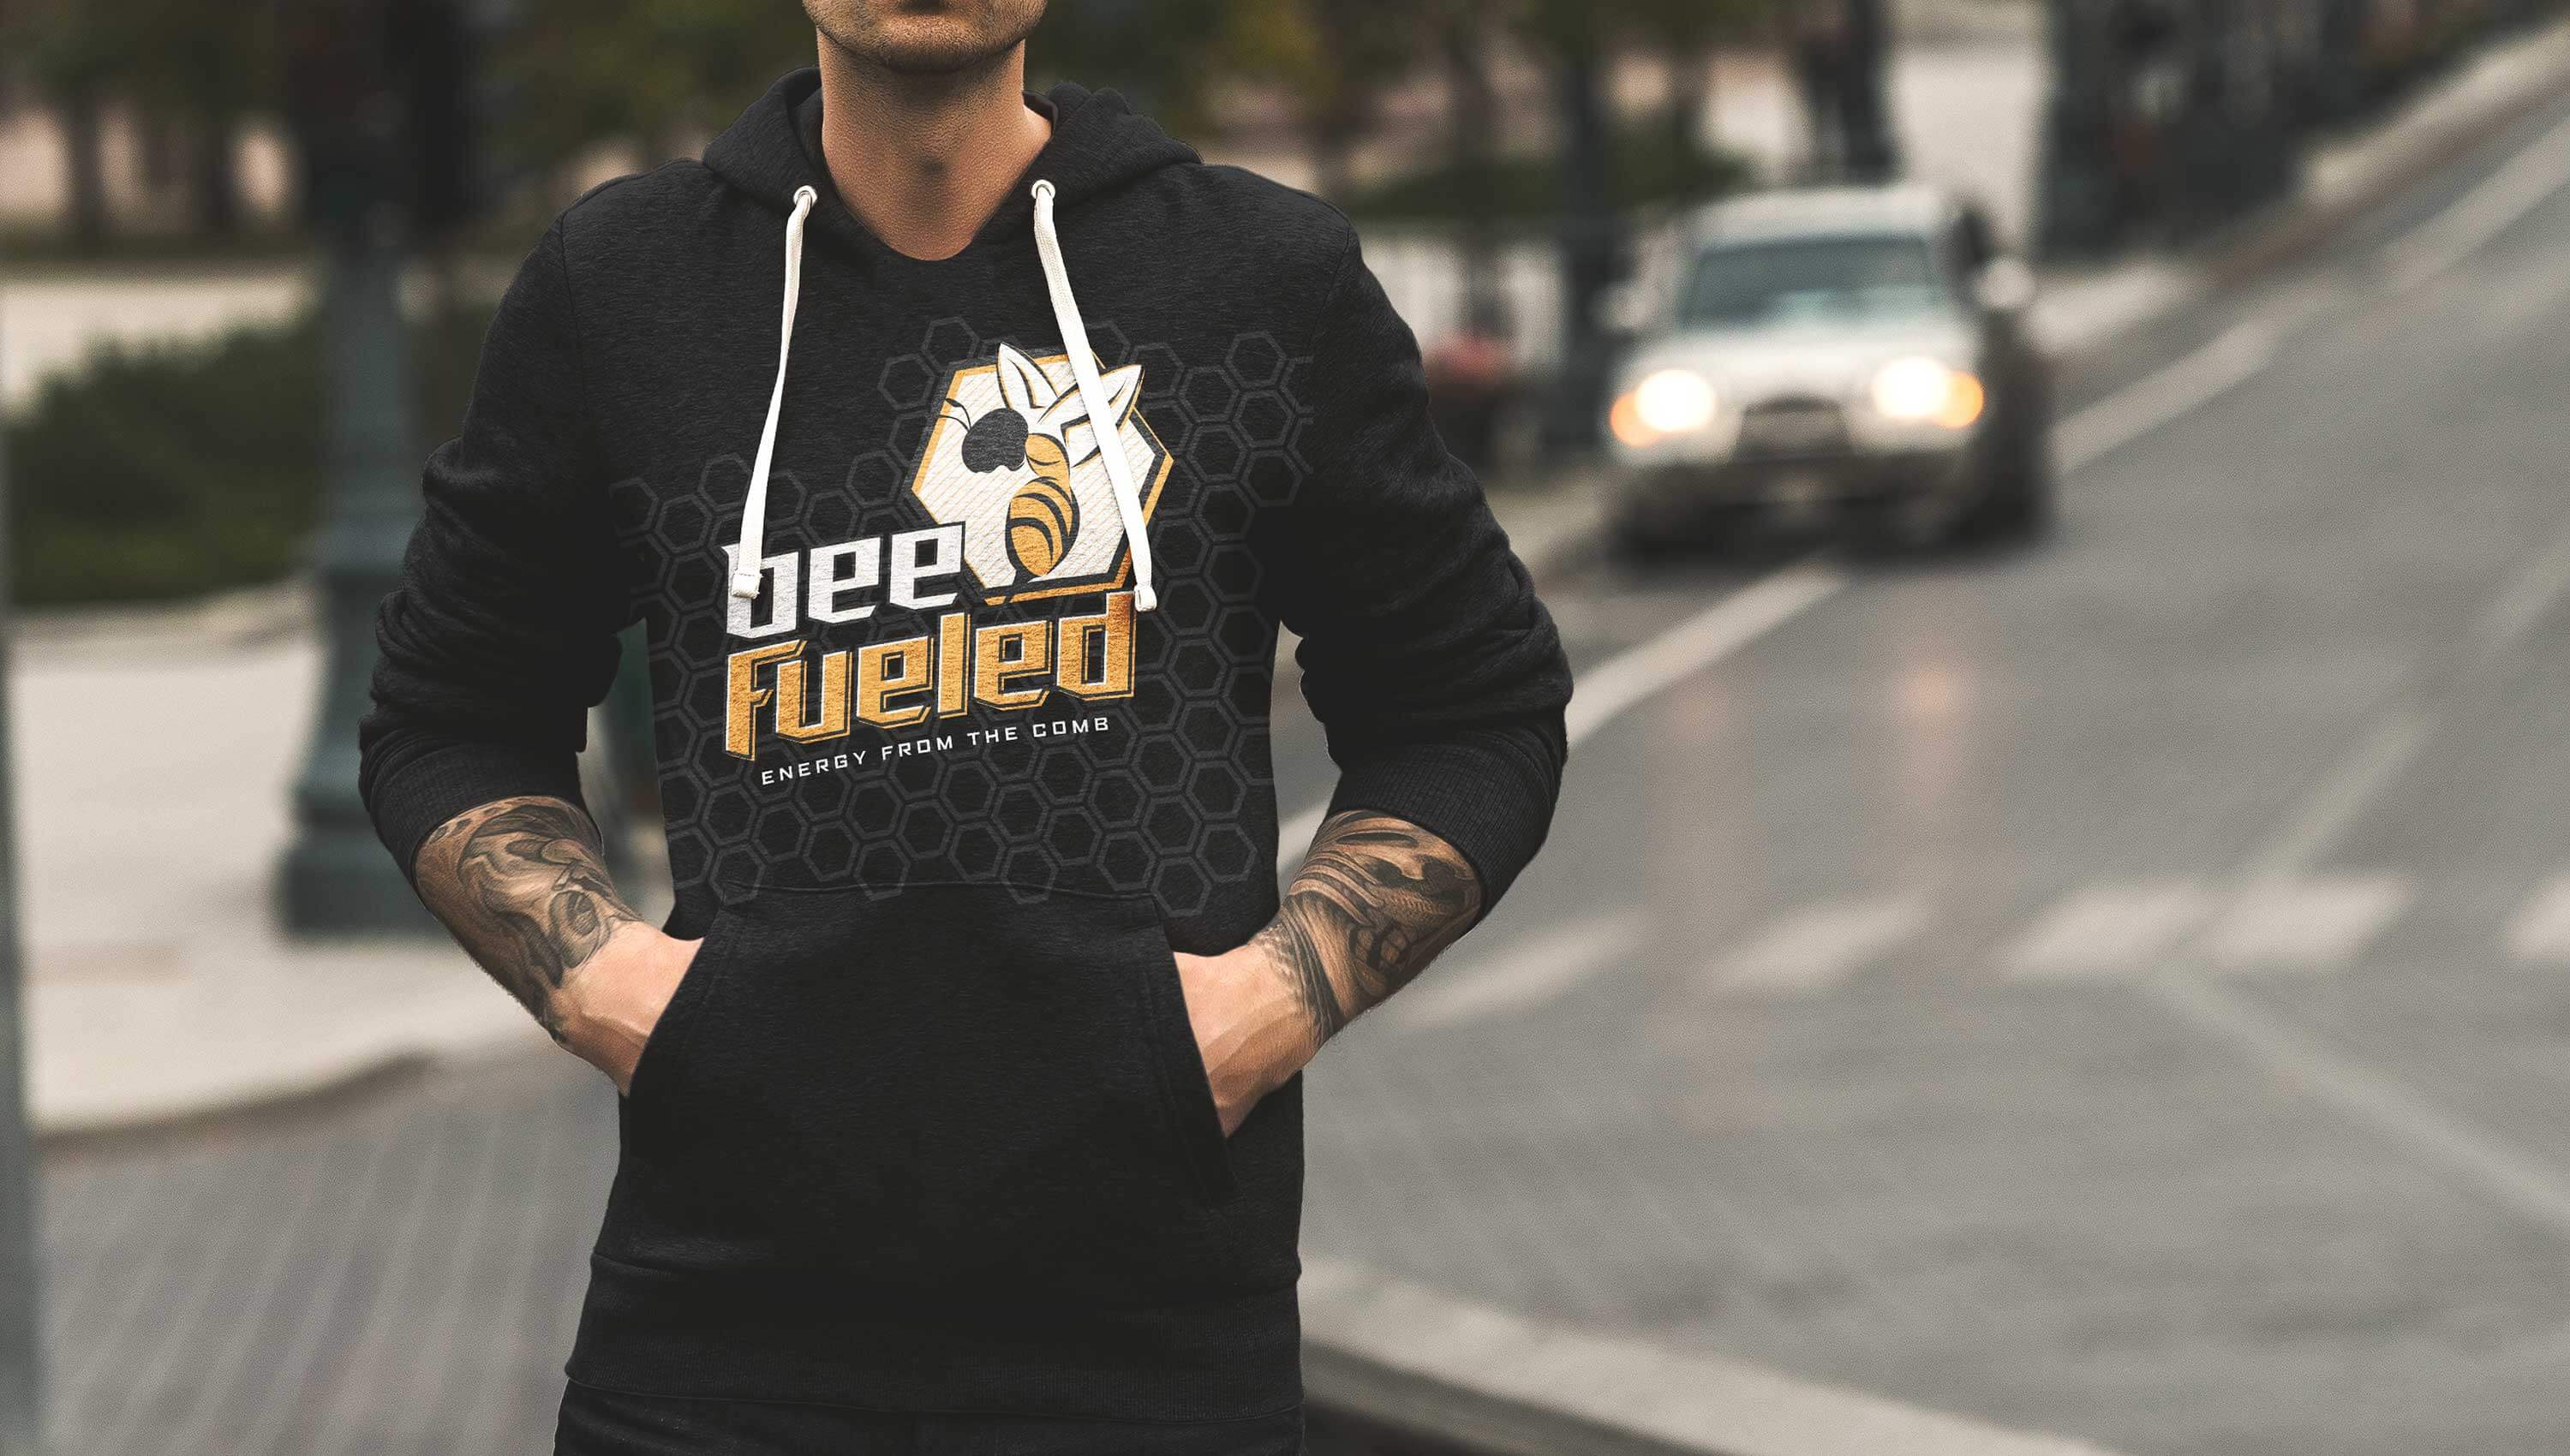 Bee Fueled apparel.